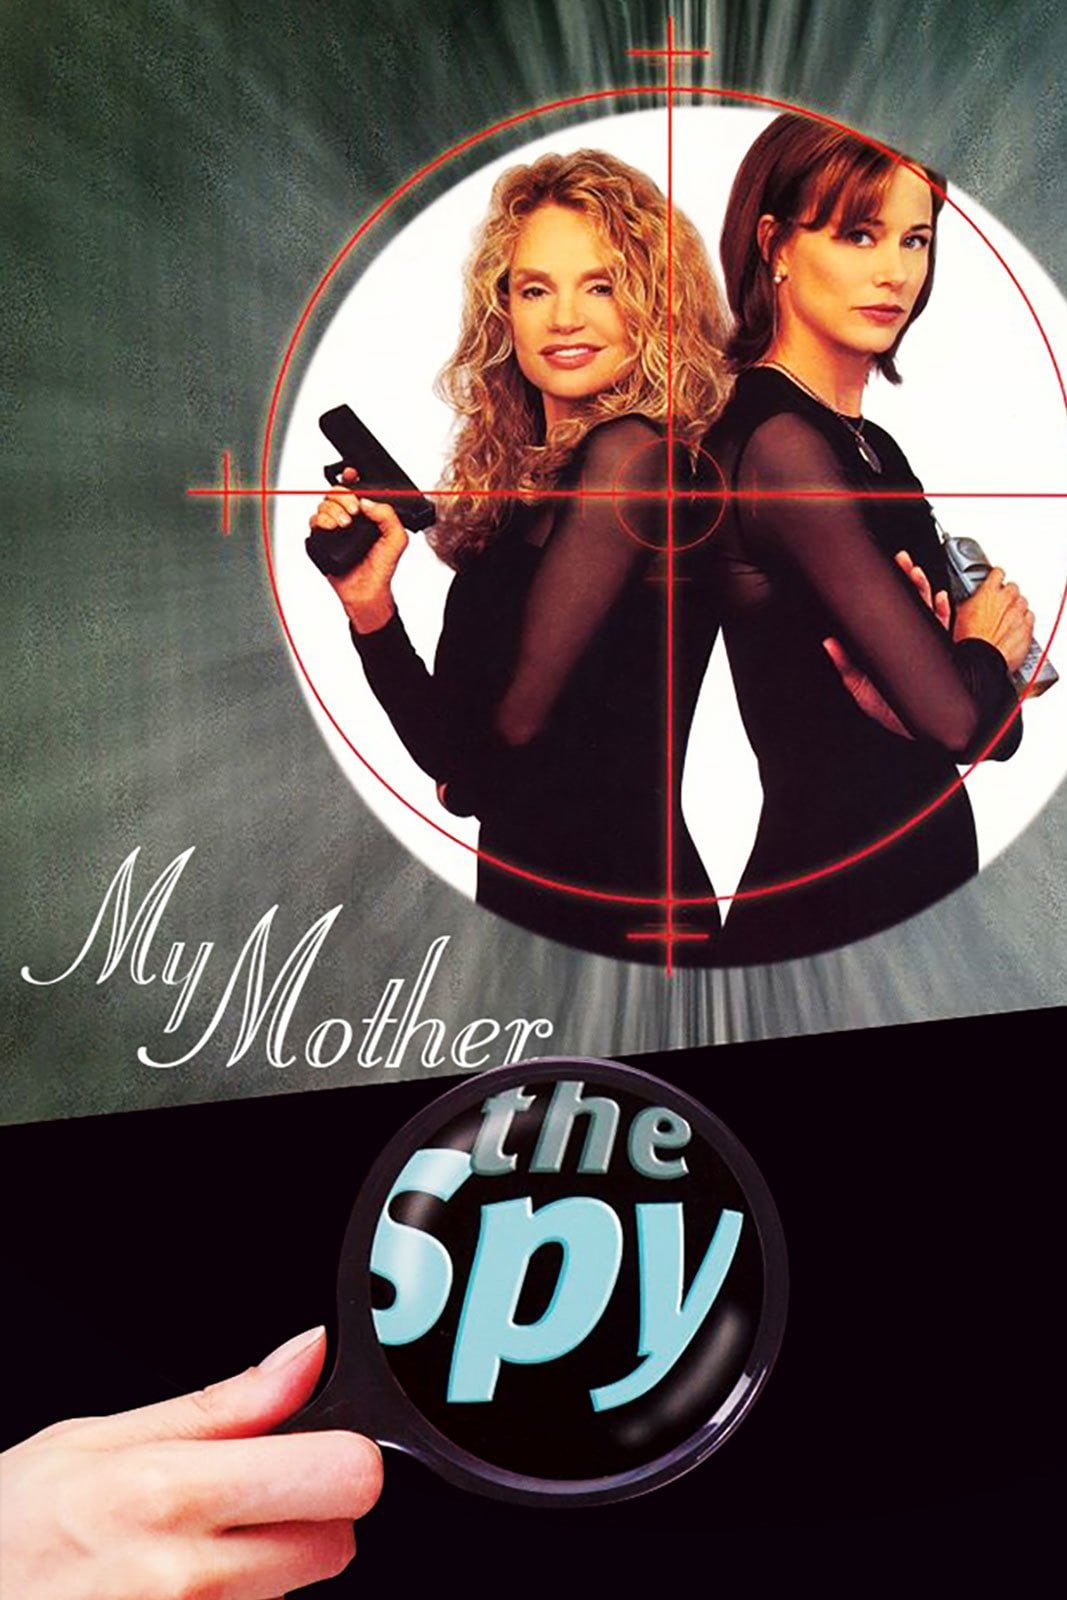 My Mother, the Spy (2000)